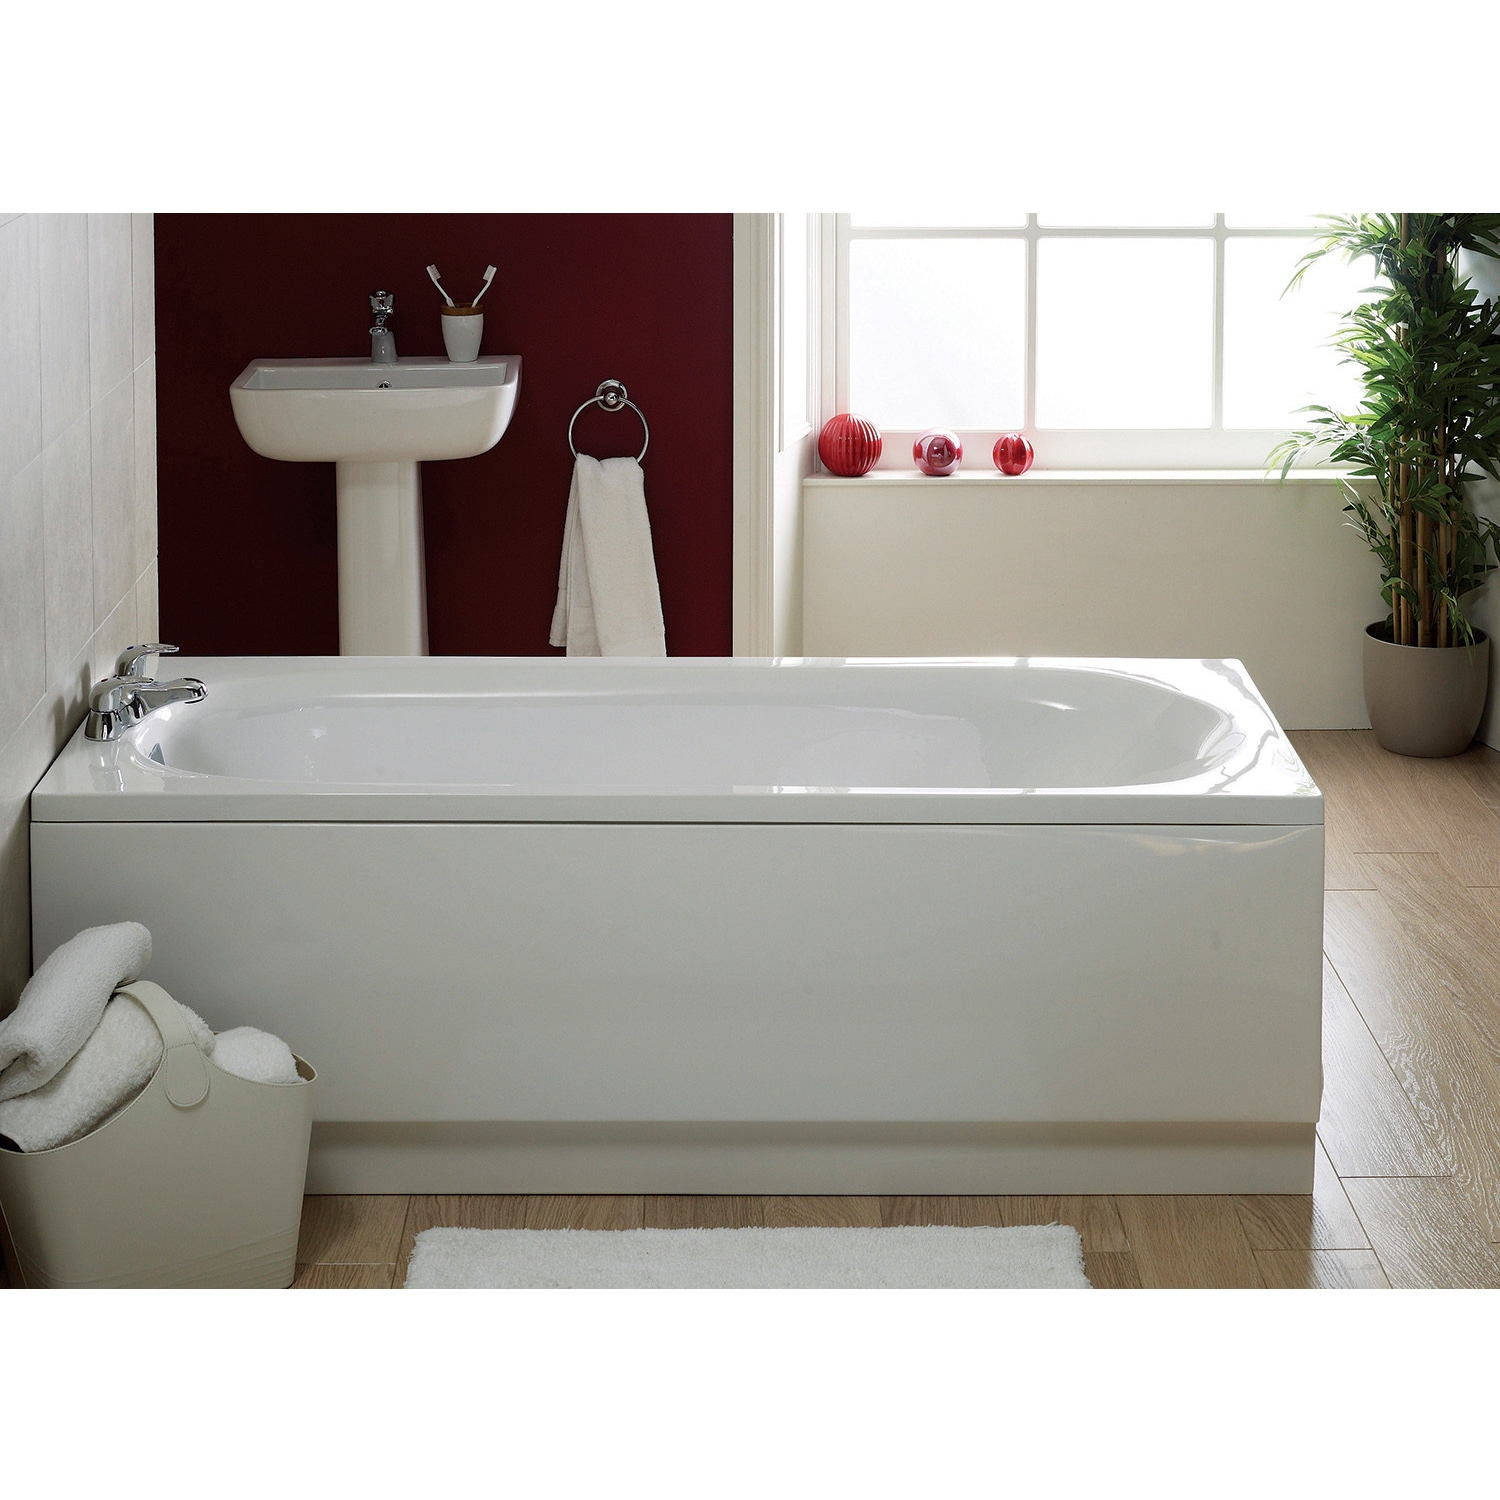 Verona Caymen Single Ended Rectangular Bath 1600mm x 700mm - 0 Tap Hole-0